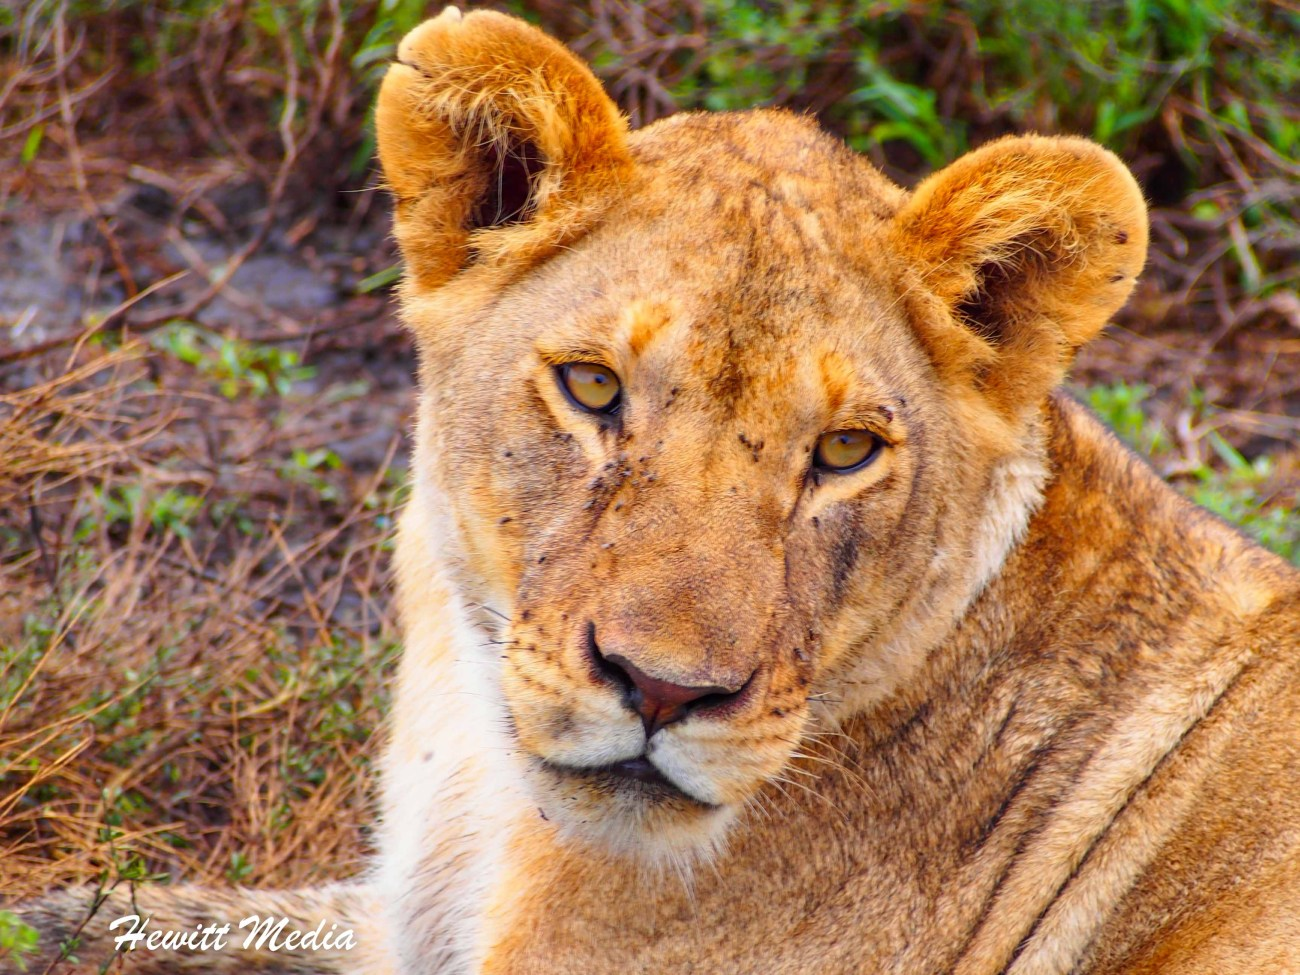 Safari Photography-1010517.jpg